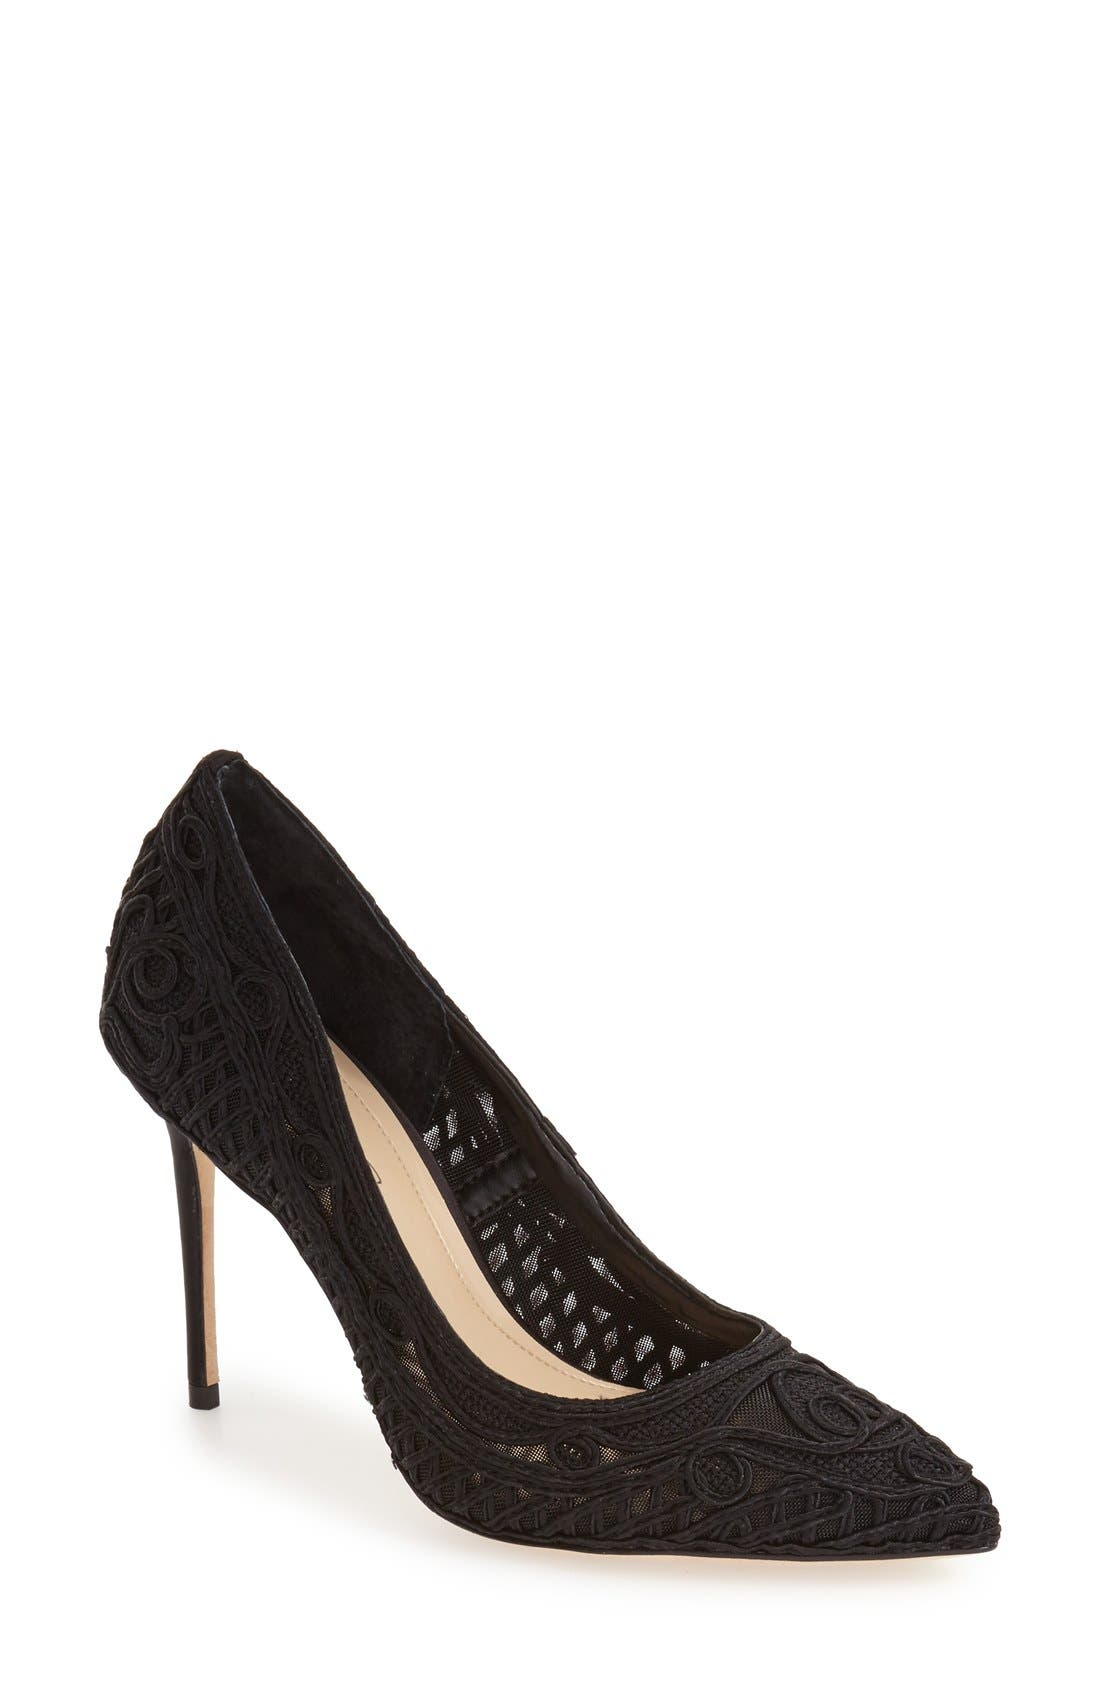 Alternate Image 1 Selected - Imagine by Vince Camuto 'Olivia' Macramé Pointy Toe Pump (Women)